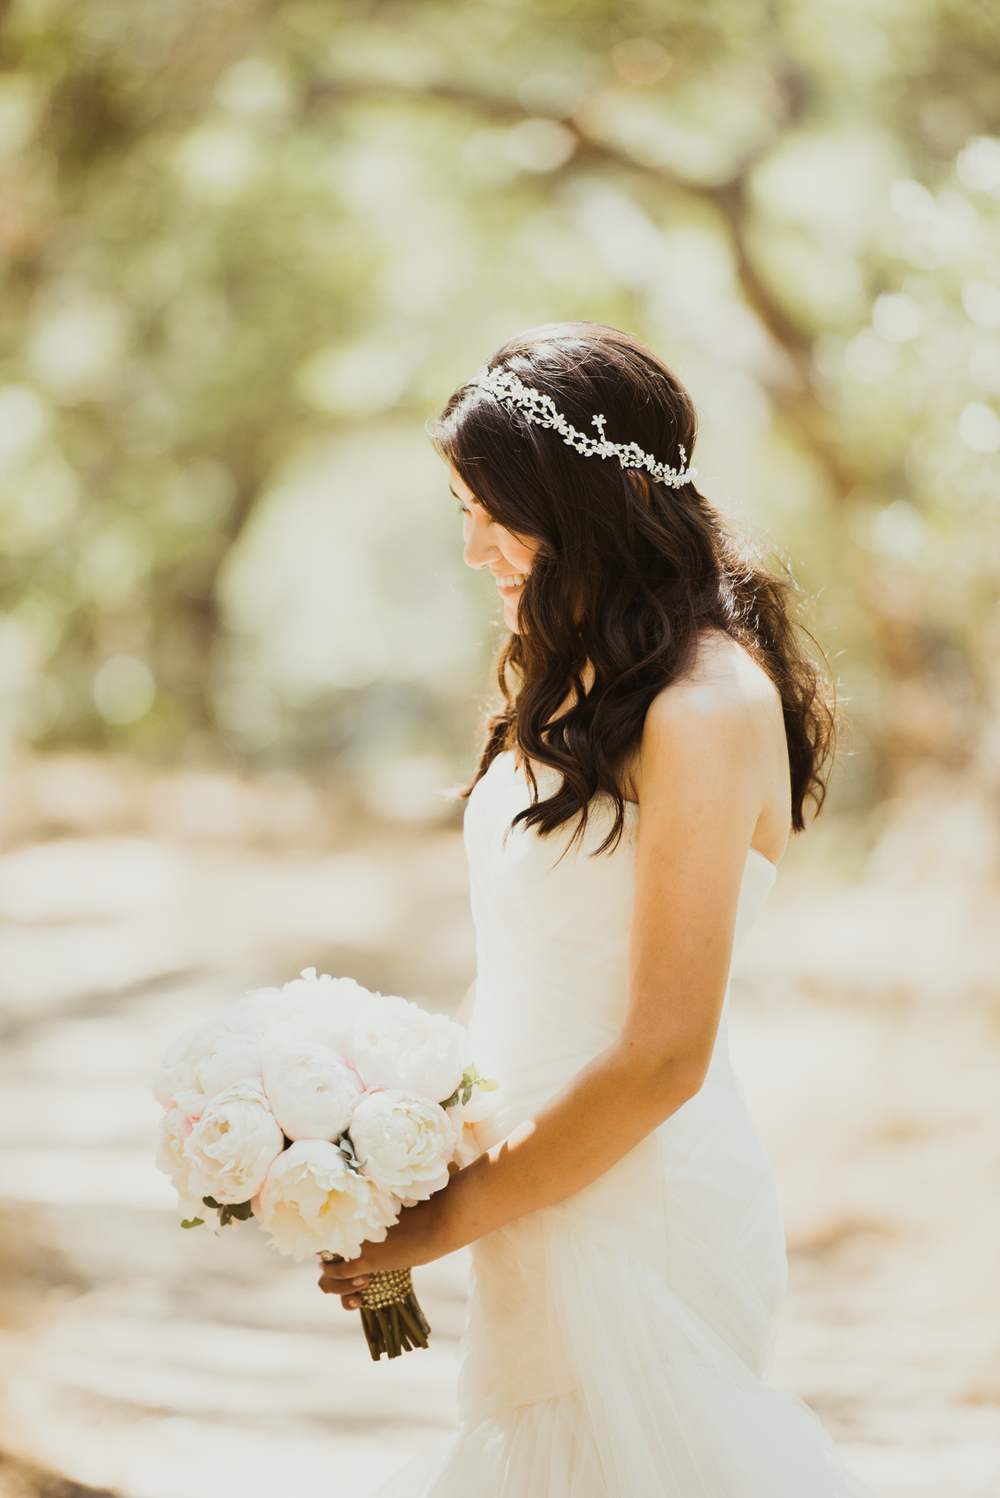 ©Isaiah & Taylor Photography - Inn of the Seventh Ray Wedding, Topanga Canyon California-26.jpg